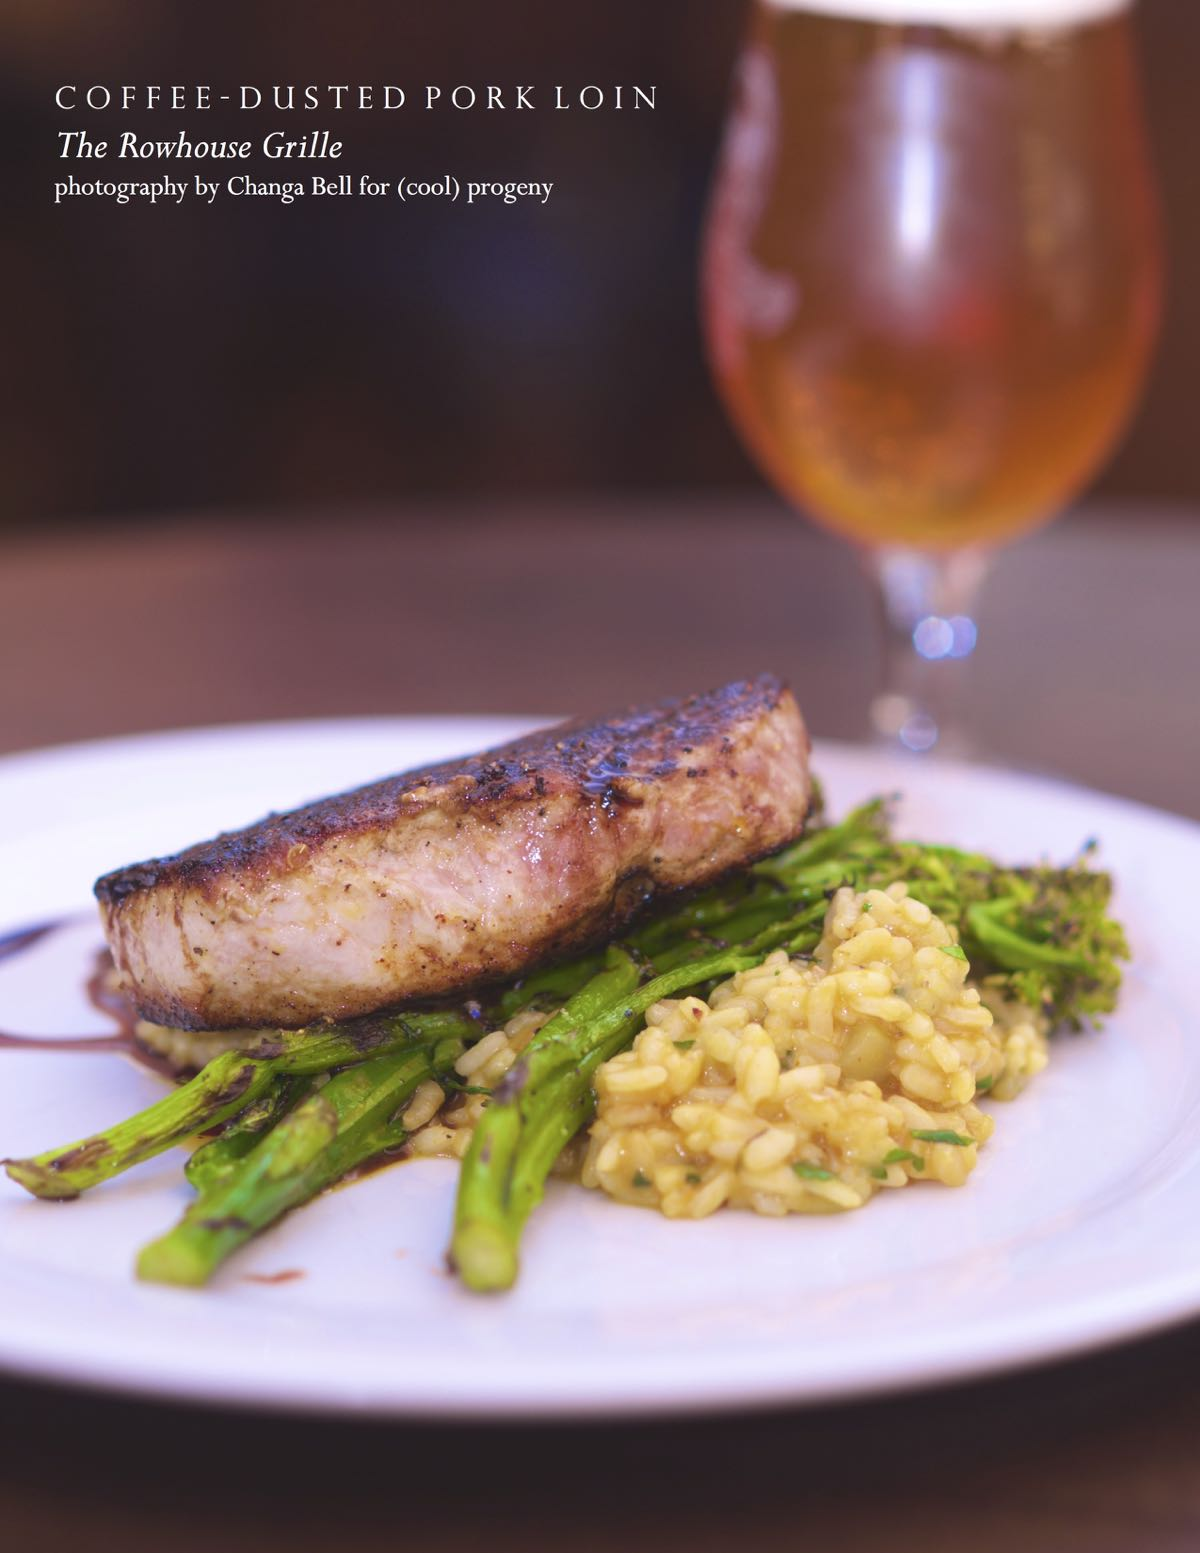 Must-Have Meals in Baltimore - The Rowhouse Grille- (cool) progeny